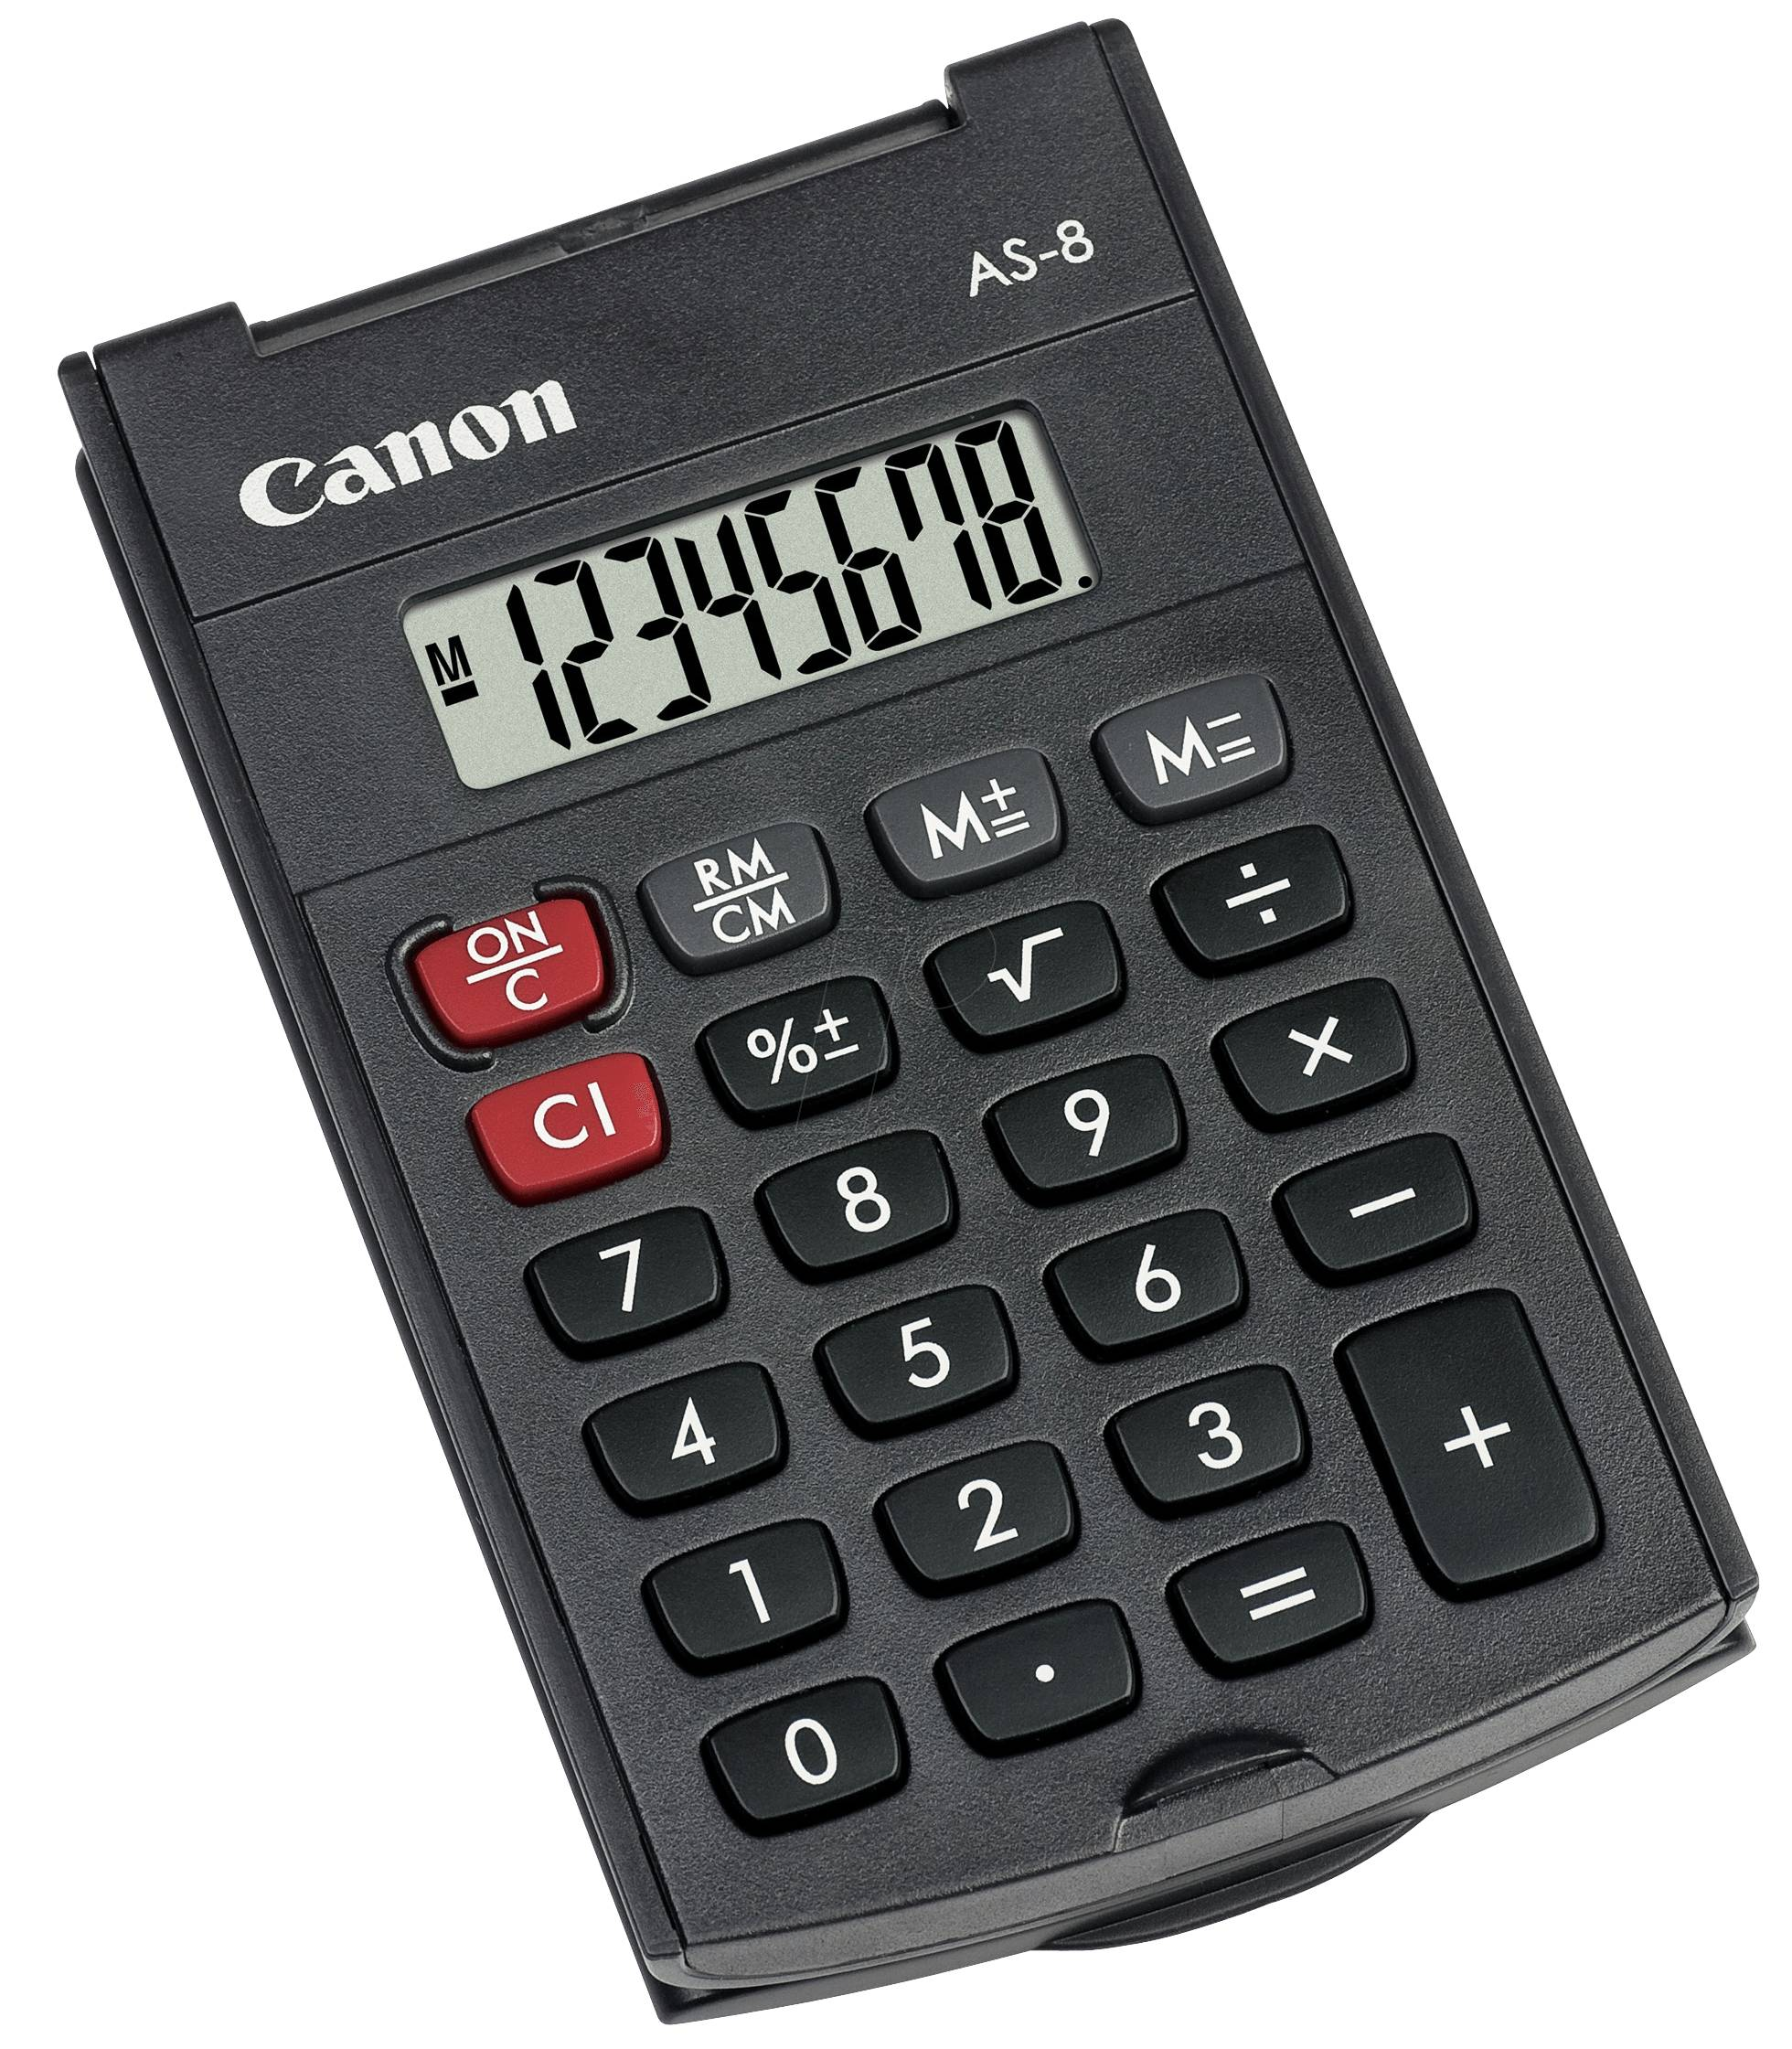 Canon AS-8 - Calculator, black